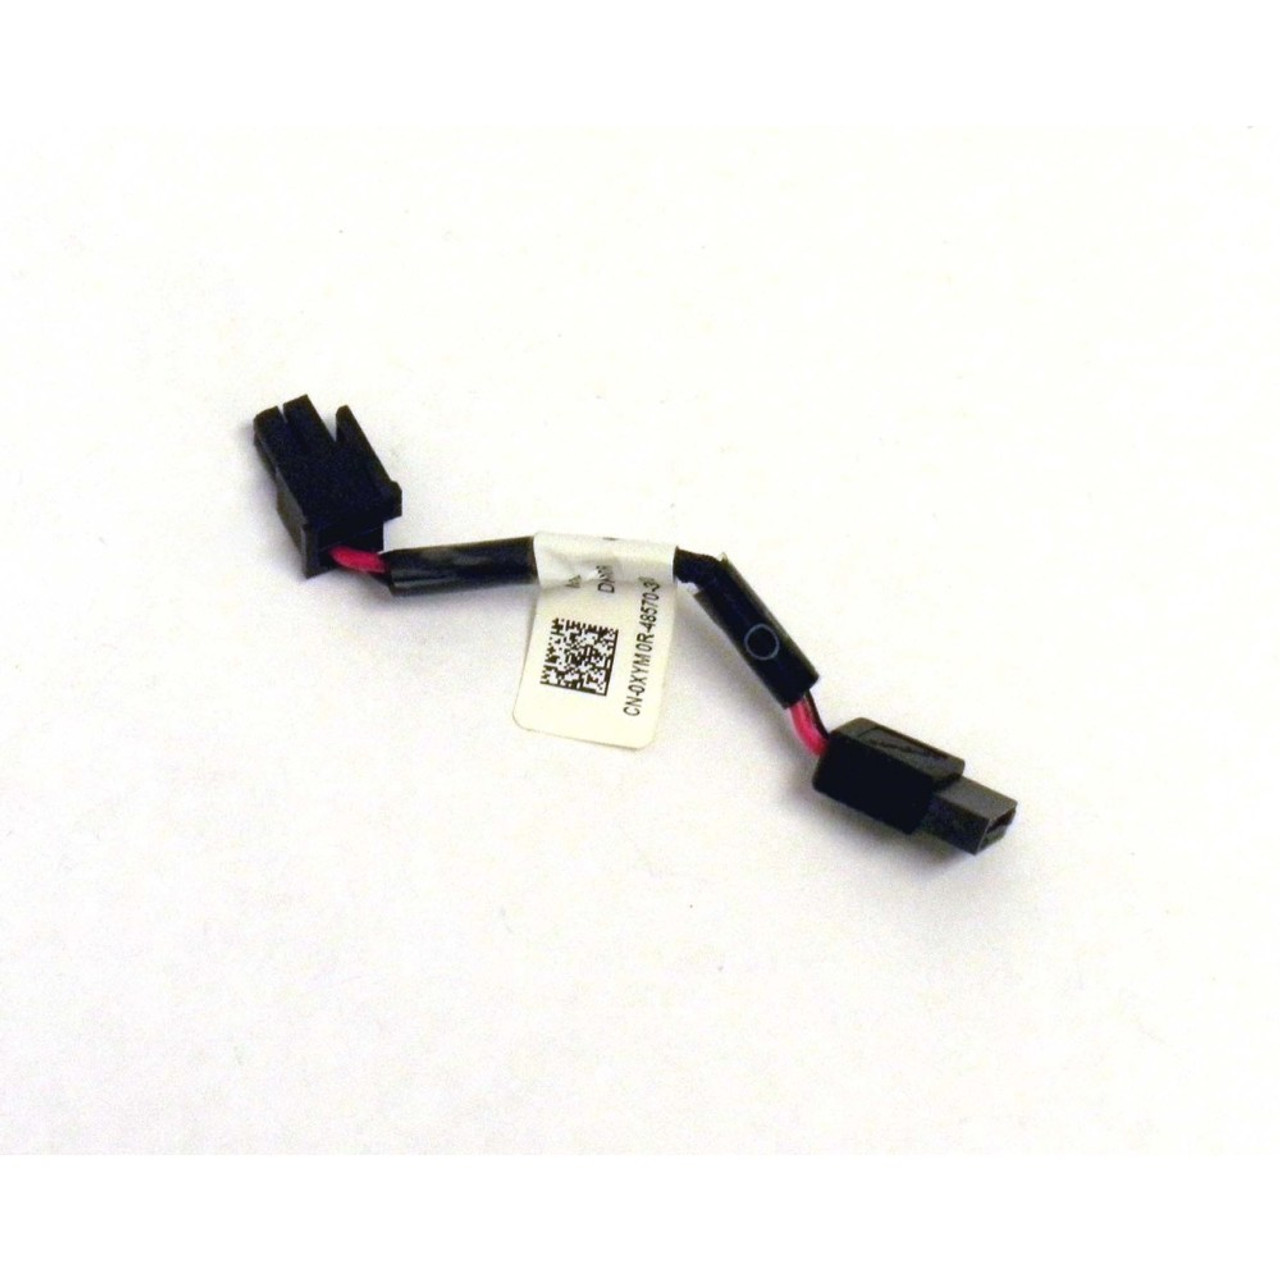 POWER CABLE G95P6 DELL POWEREDGE SERVER R720 BP BACKPLANE SIGNAL